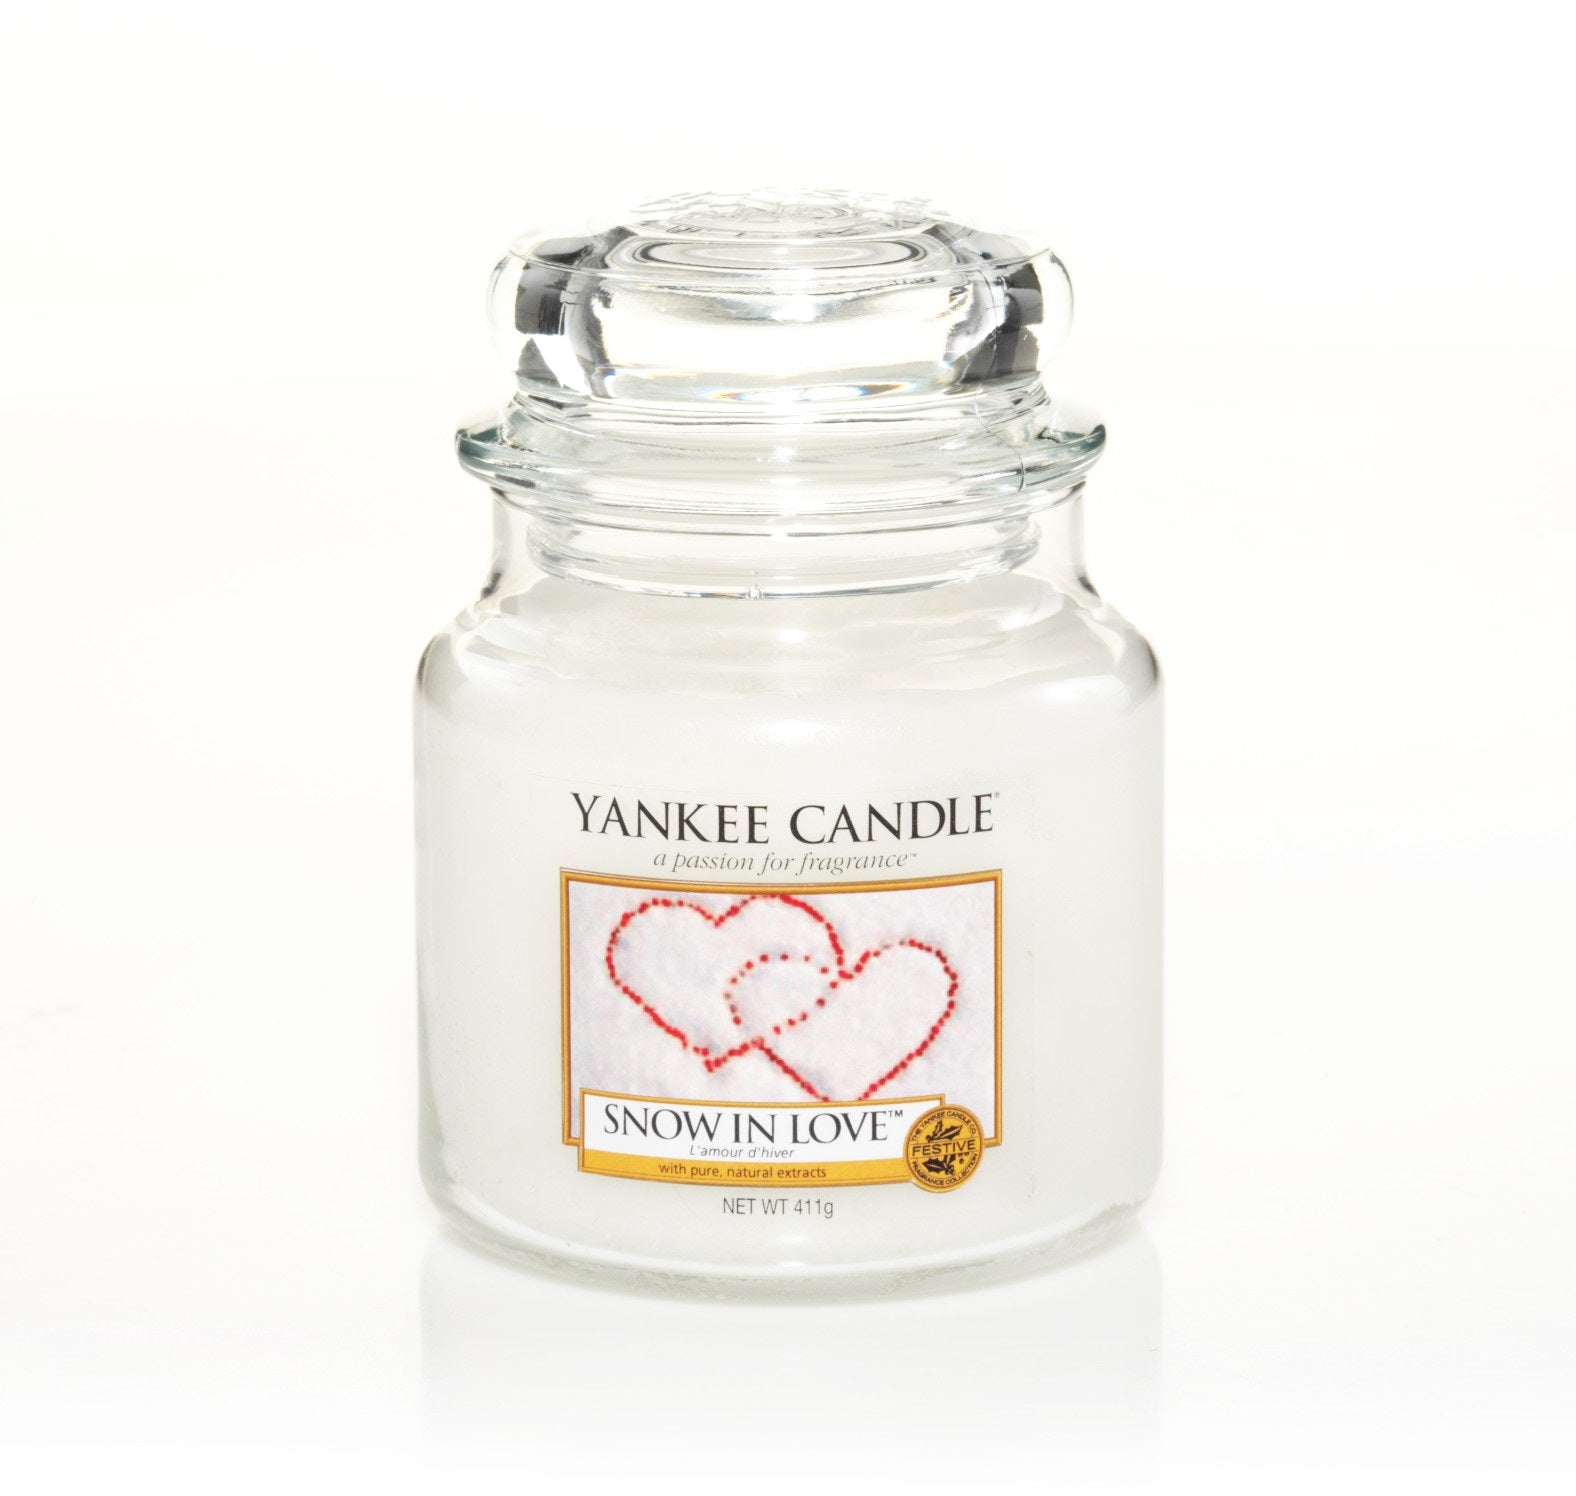 SNOW IN LOVE -Yankee Candle- Giara Media